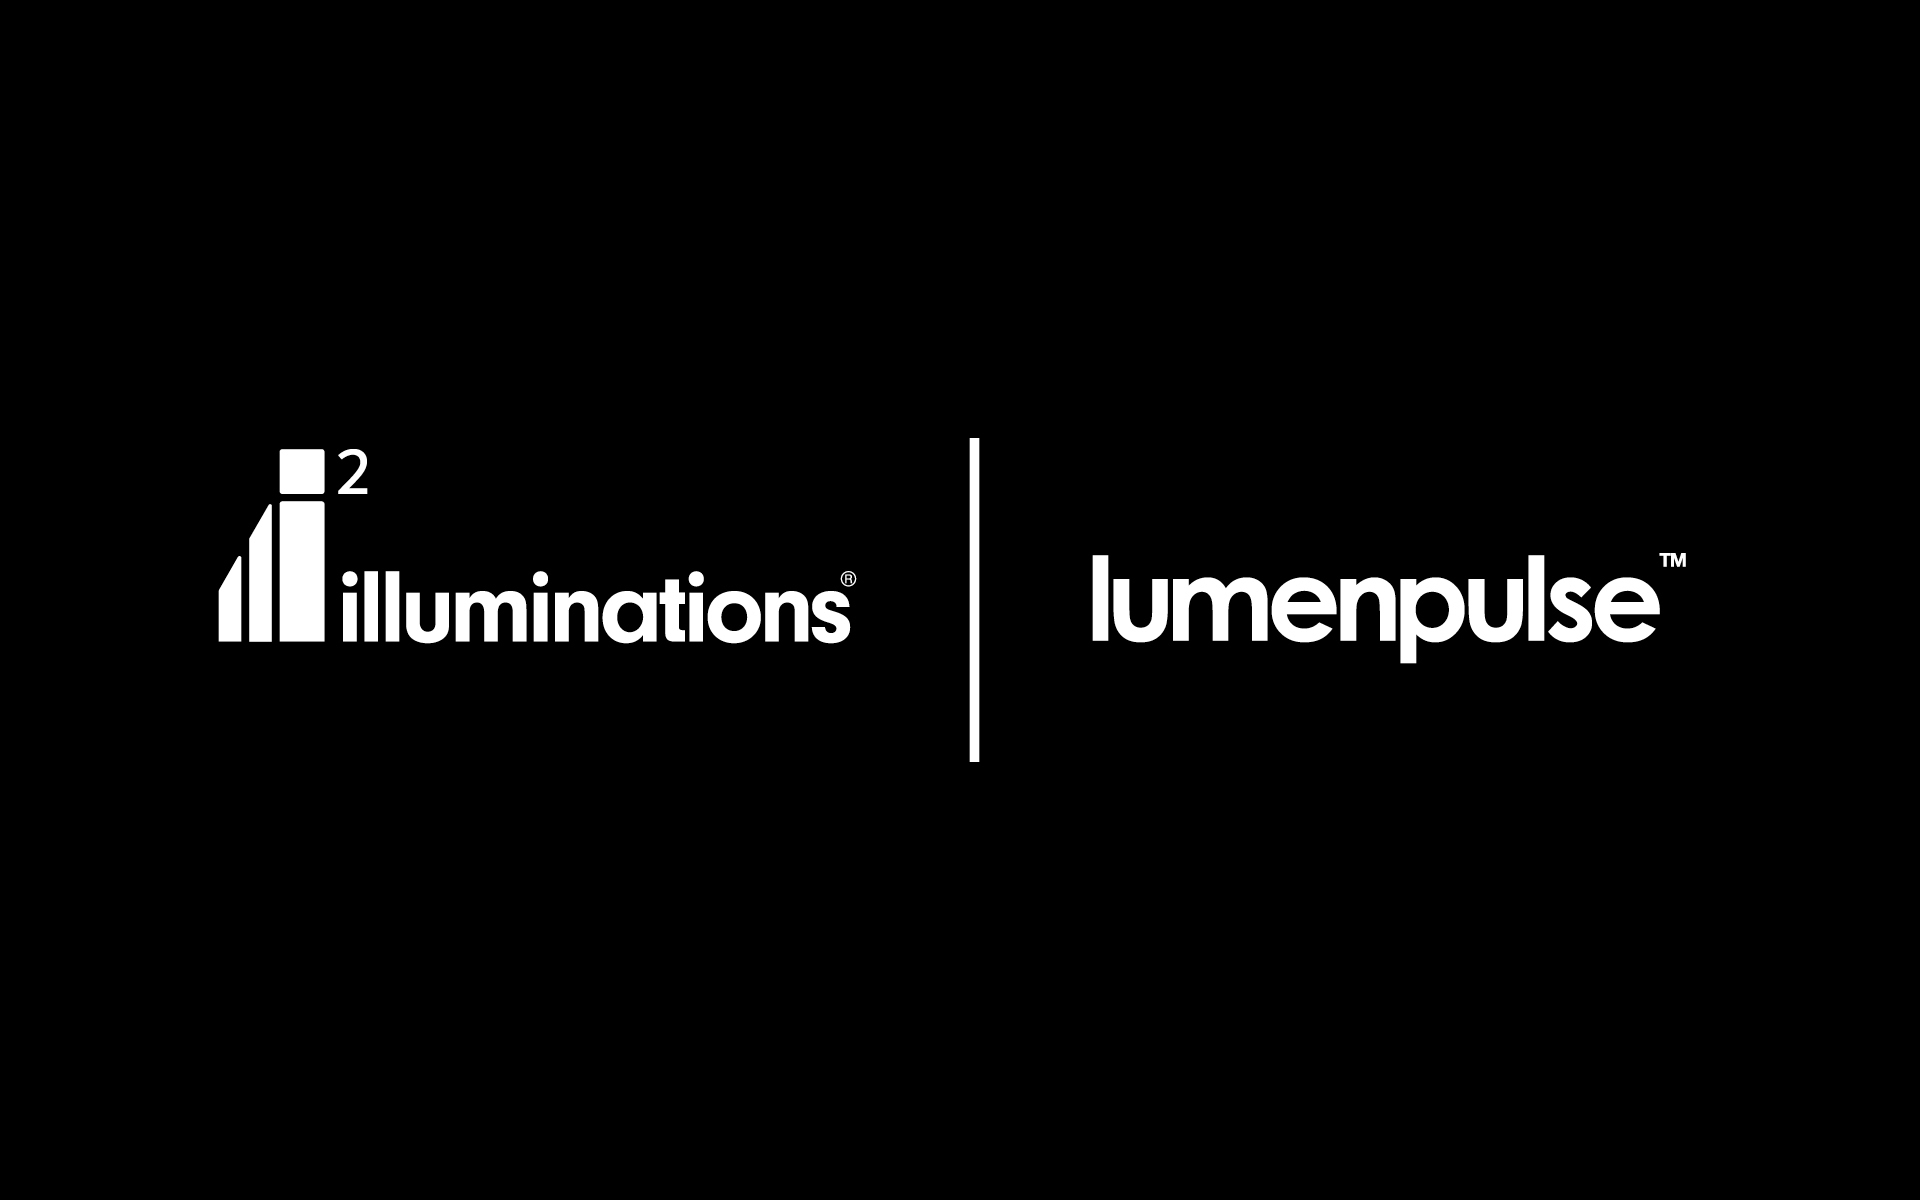 2021_05_Illuminations_Communique2_002_lumenpulse.jpg